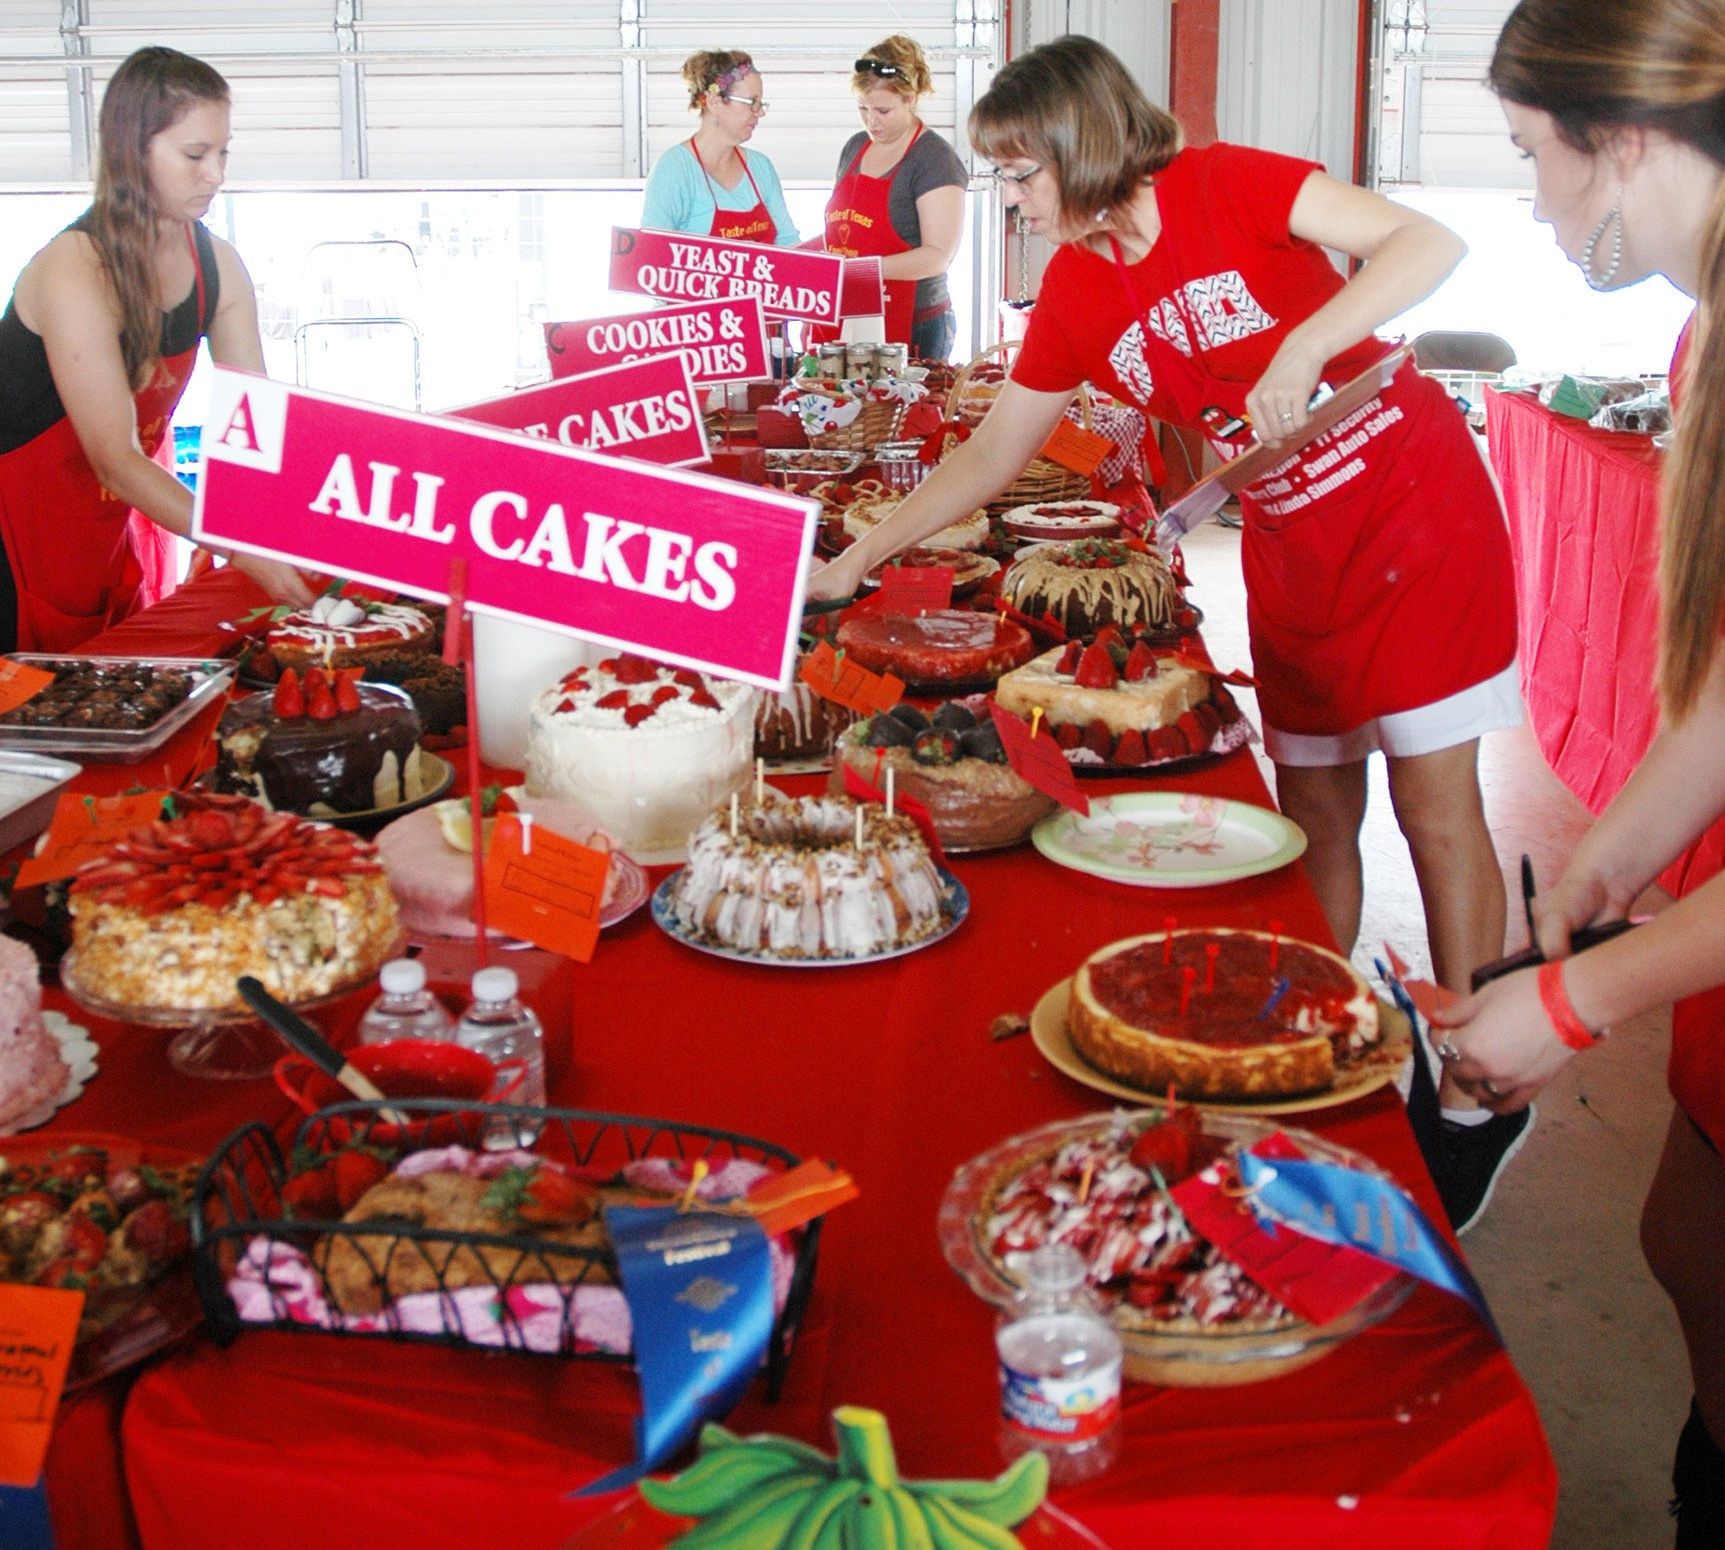 The judges and event organizers had their plates full at last year's Poteet Strawberry Festival Taste of Texas Food Show. Enter your favorite recipe for the 2016 contest to be held Sunday, April 10.